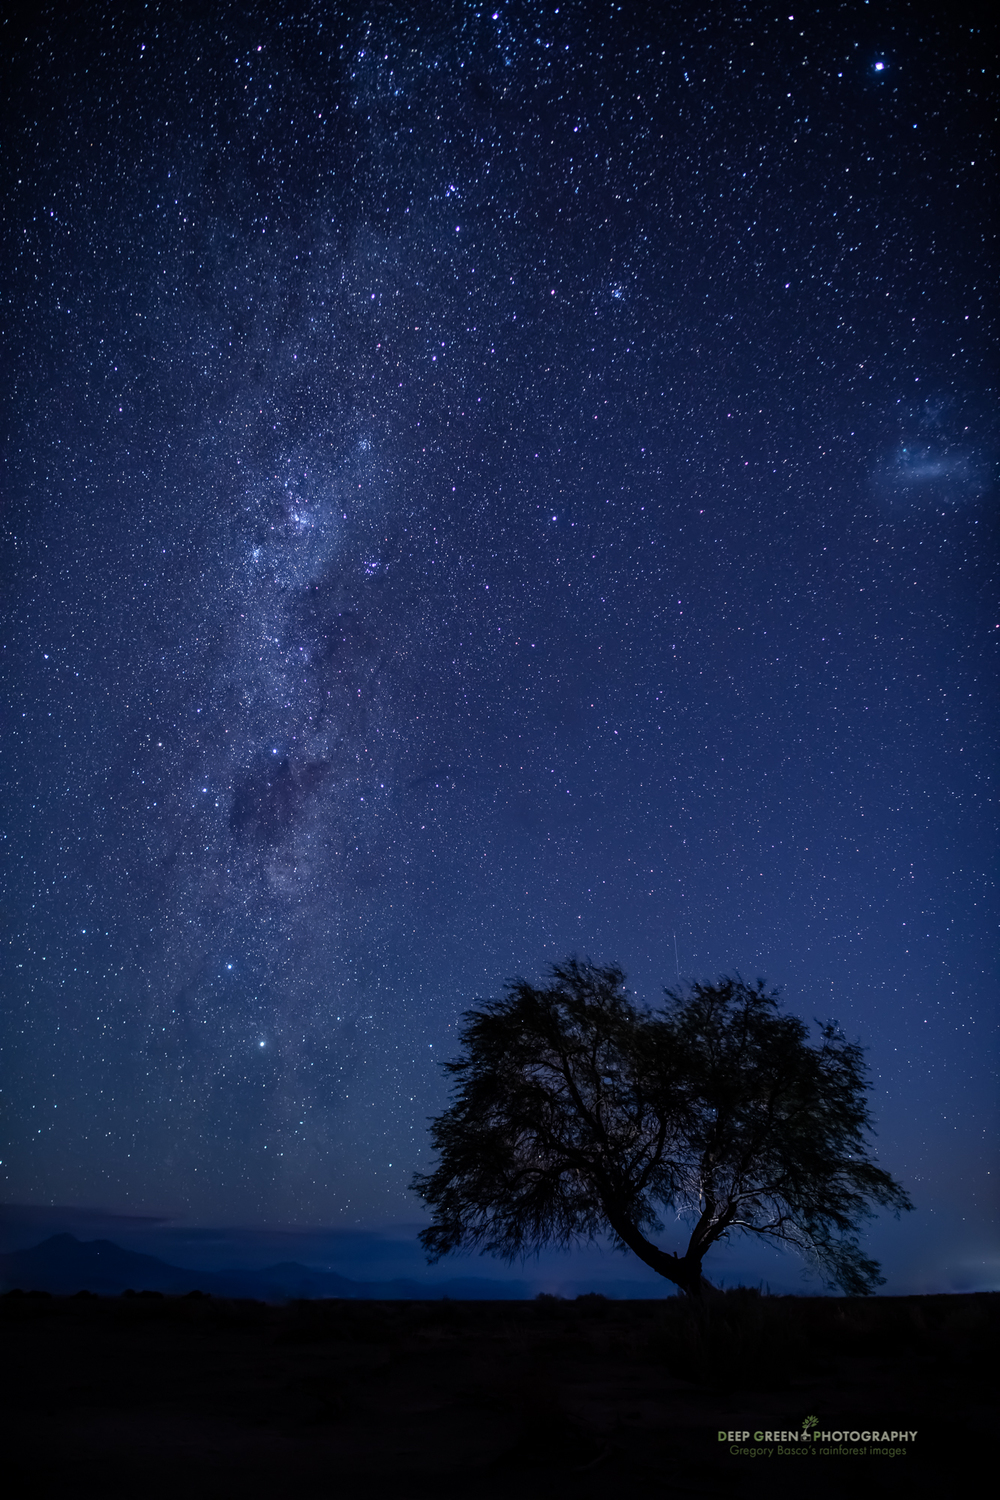 A rare tree in the Atacama Desert of Chile at night wth the Milky Way